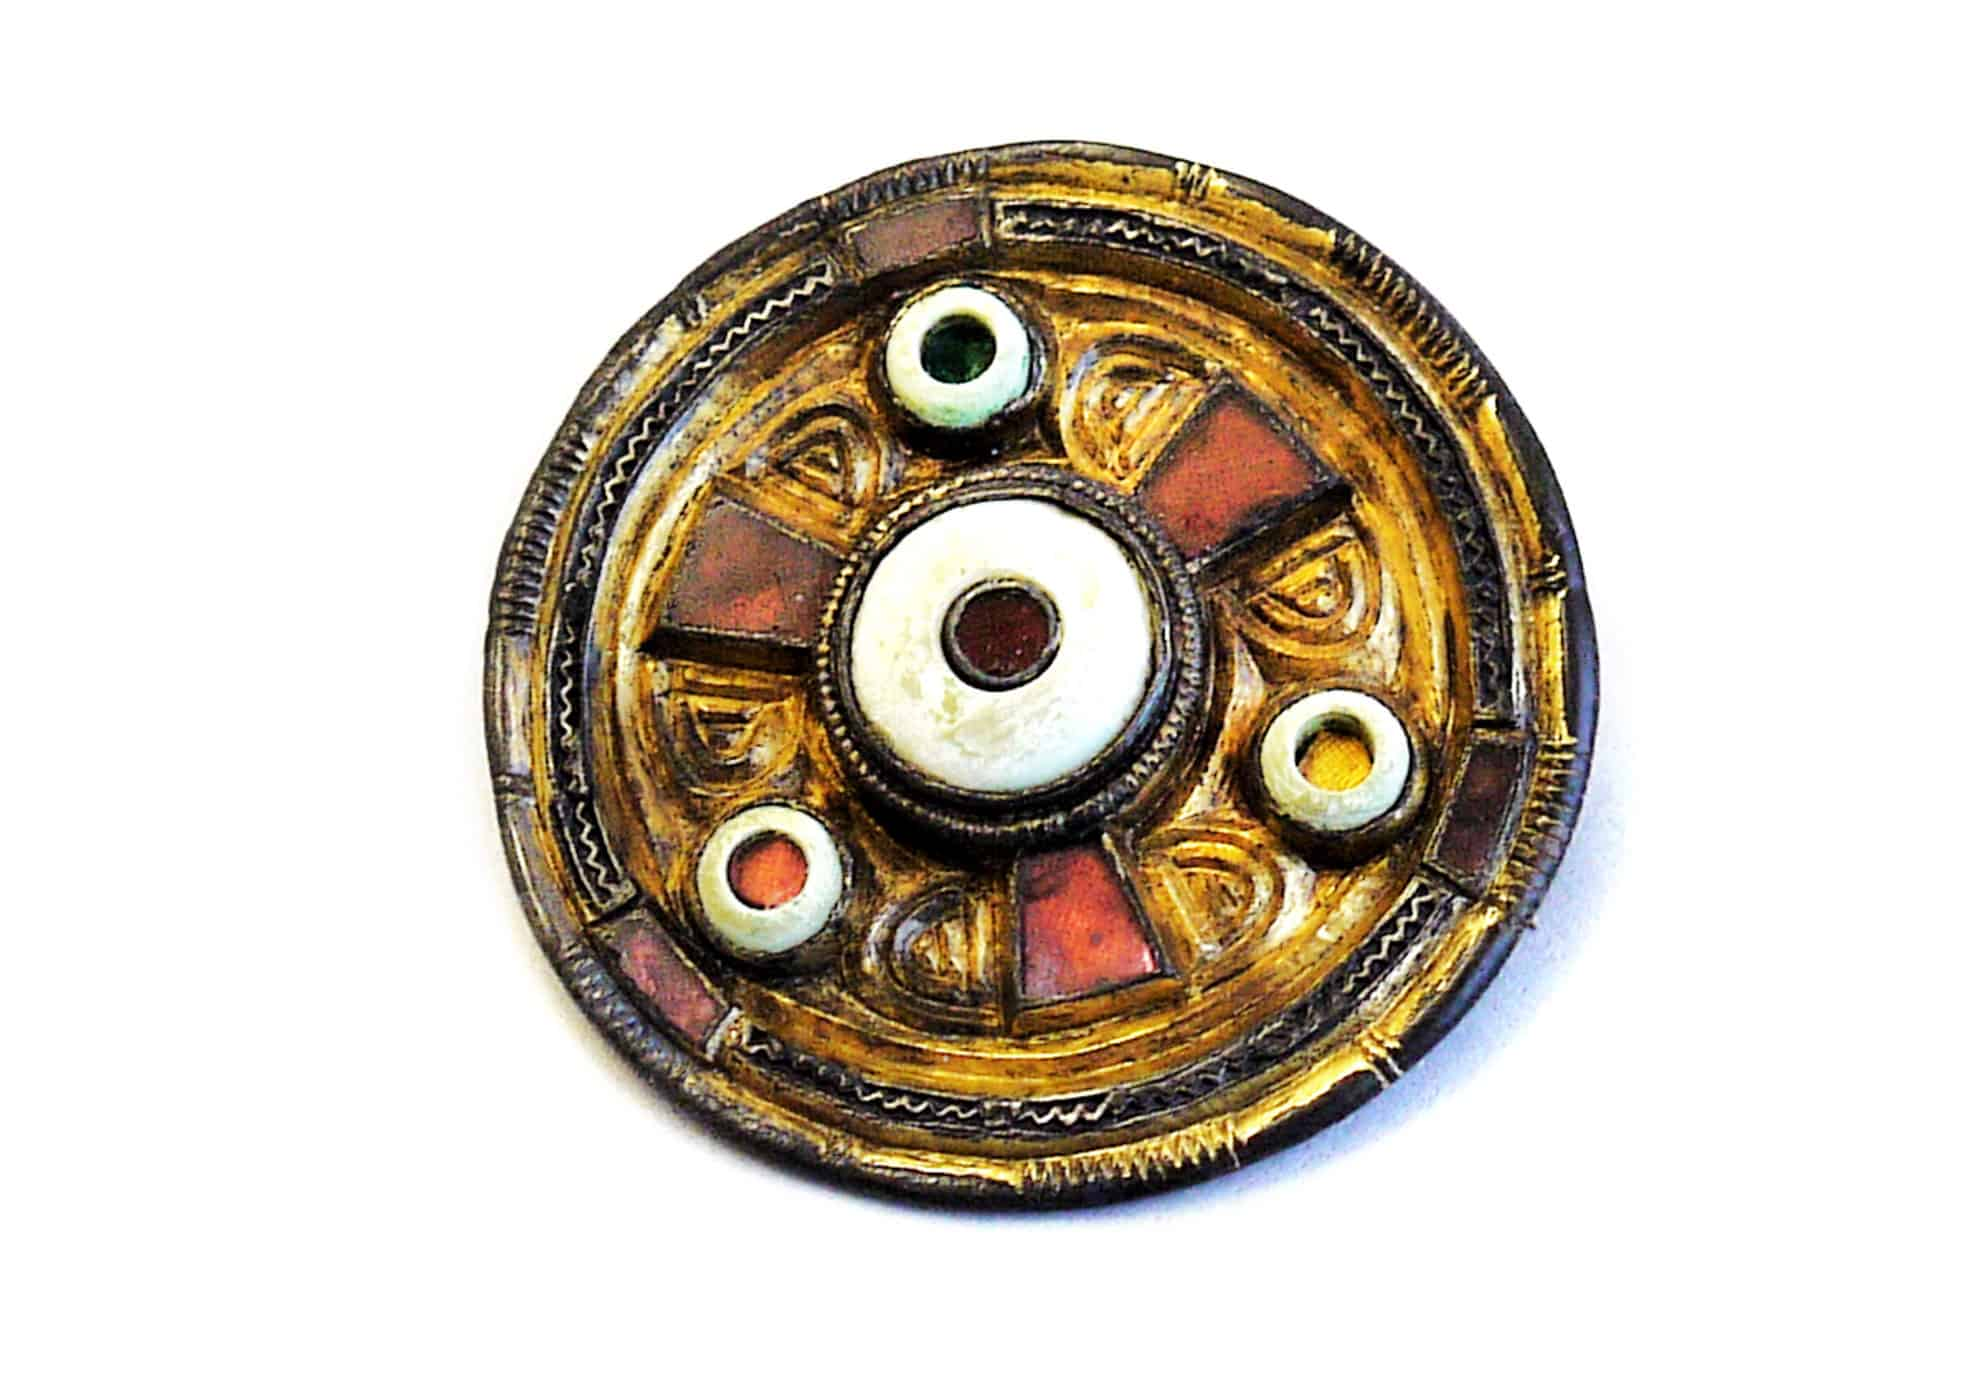 Anglo Saxon 4 disk brooch